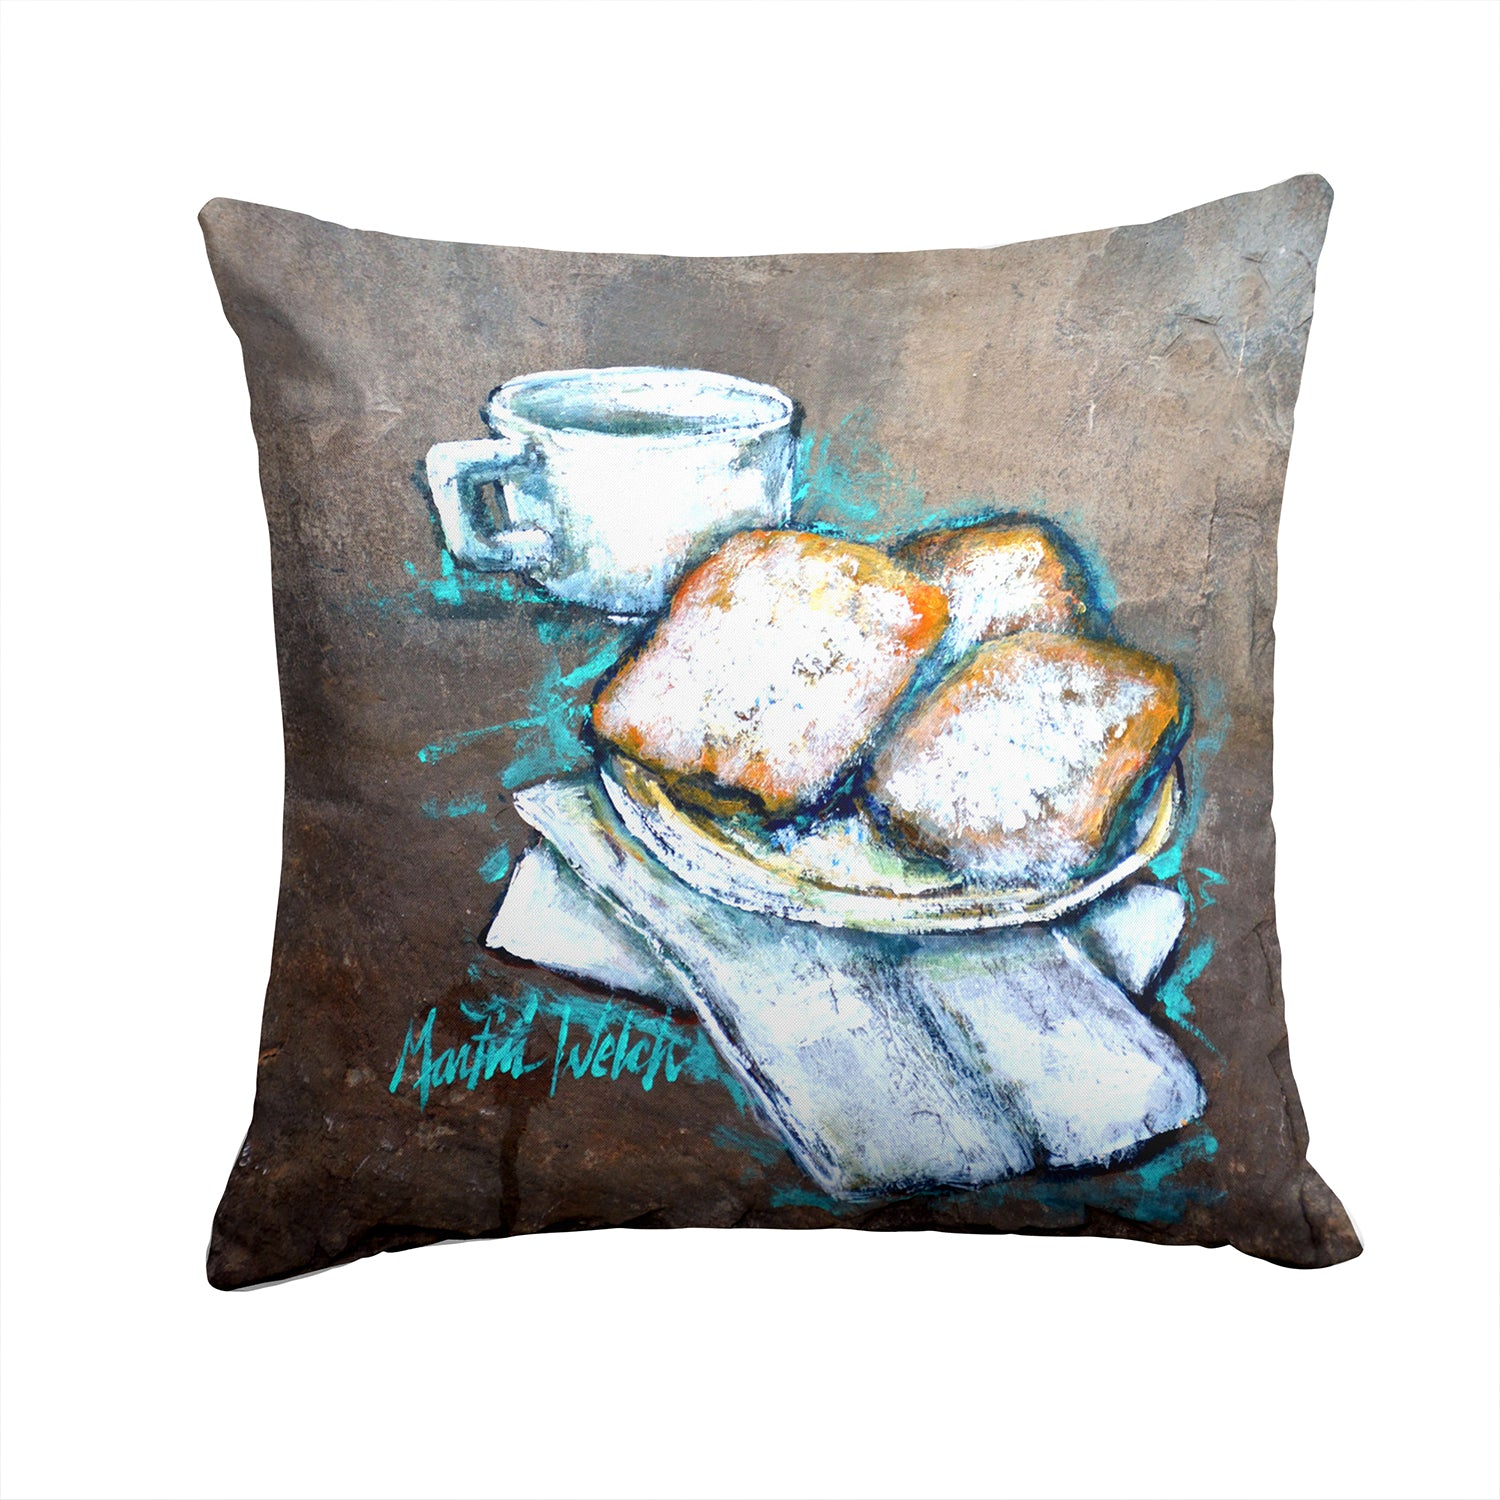 Beignets Piping Hot Fabric Decorative Pillow MW1344PW1414 by Caroline's Treasures